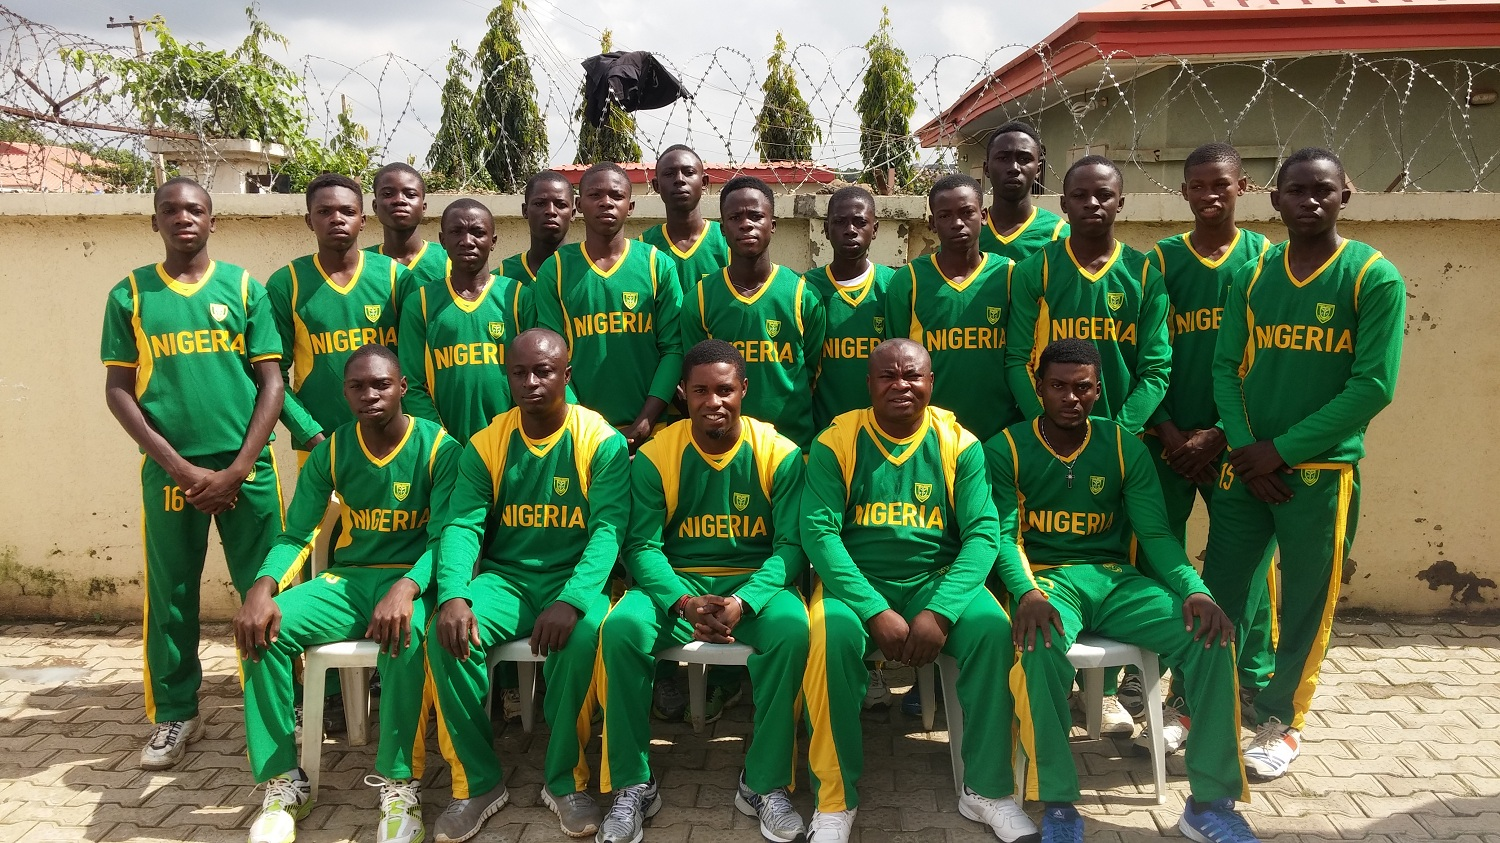 Nigeria ready for Africa's U-19 Cricket World Cup qualifiers